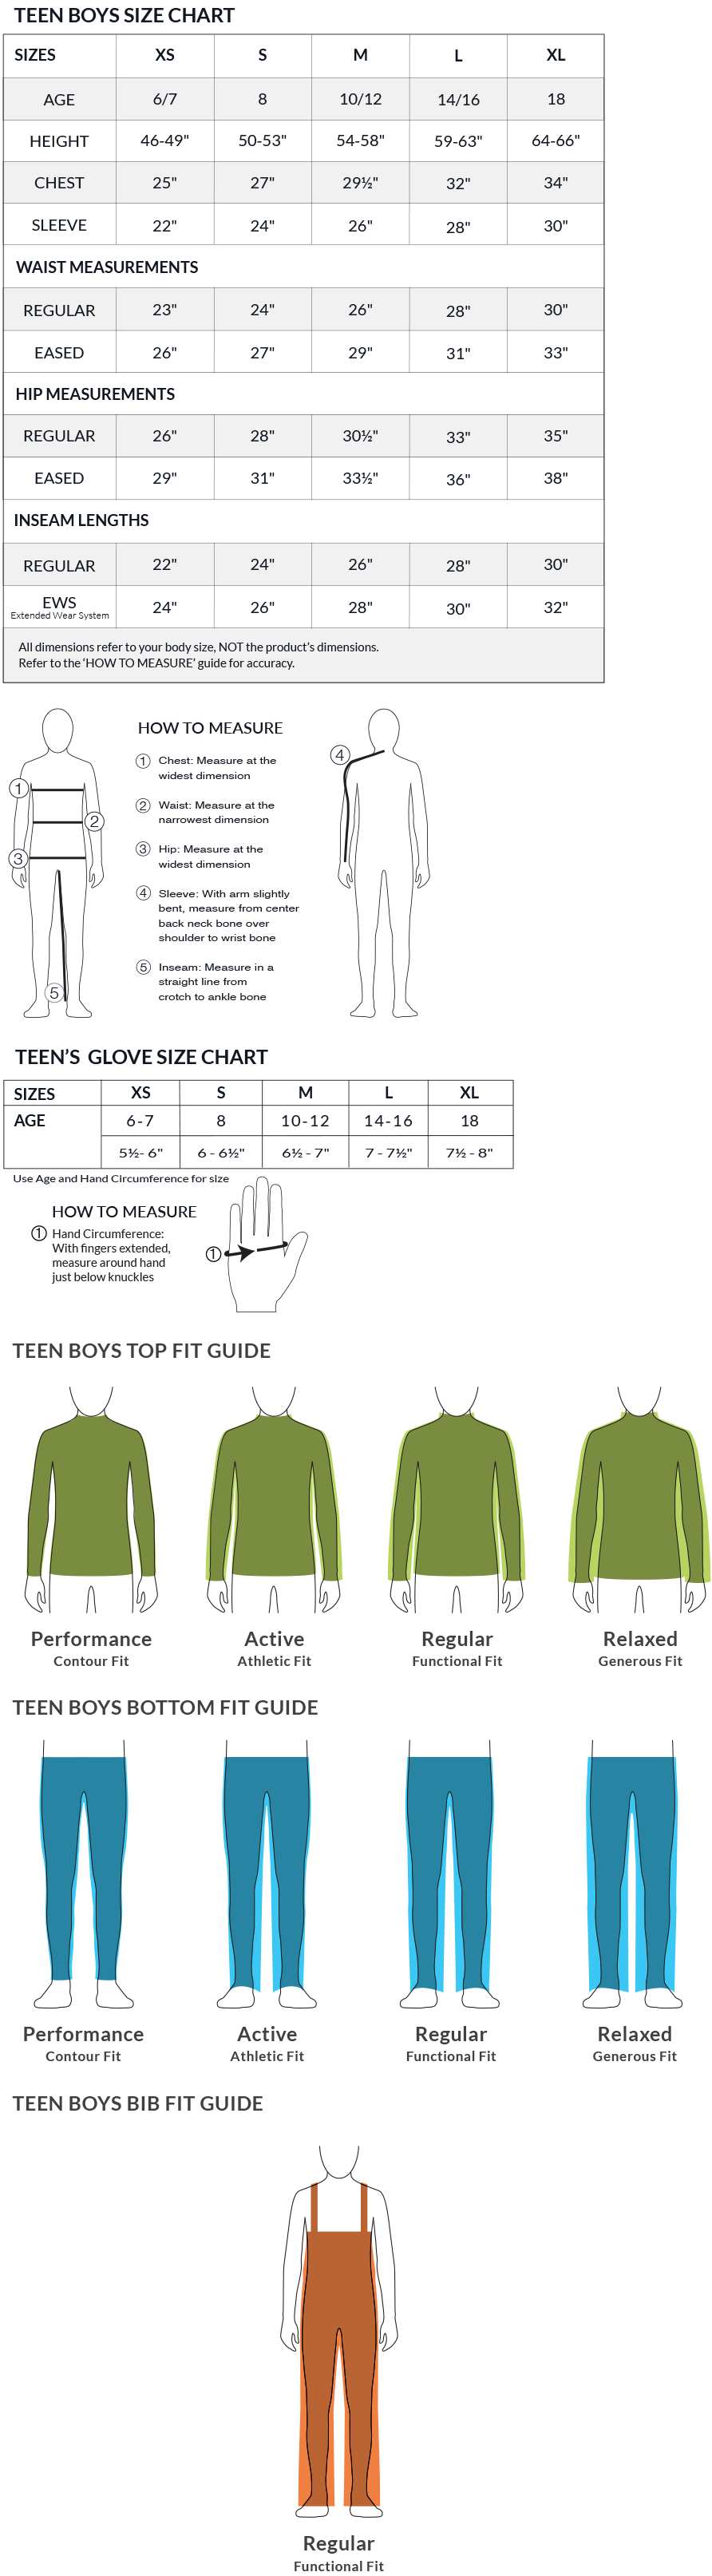 Obermeyer Teen Boys Size Chart and Fit Guide